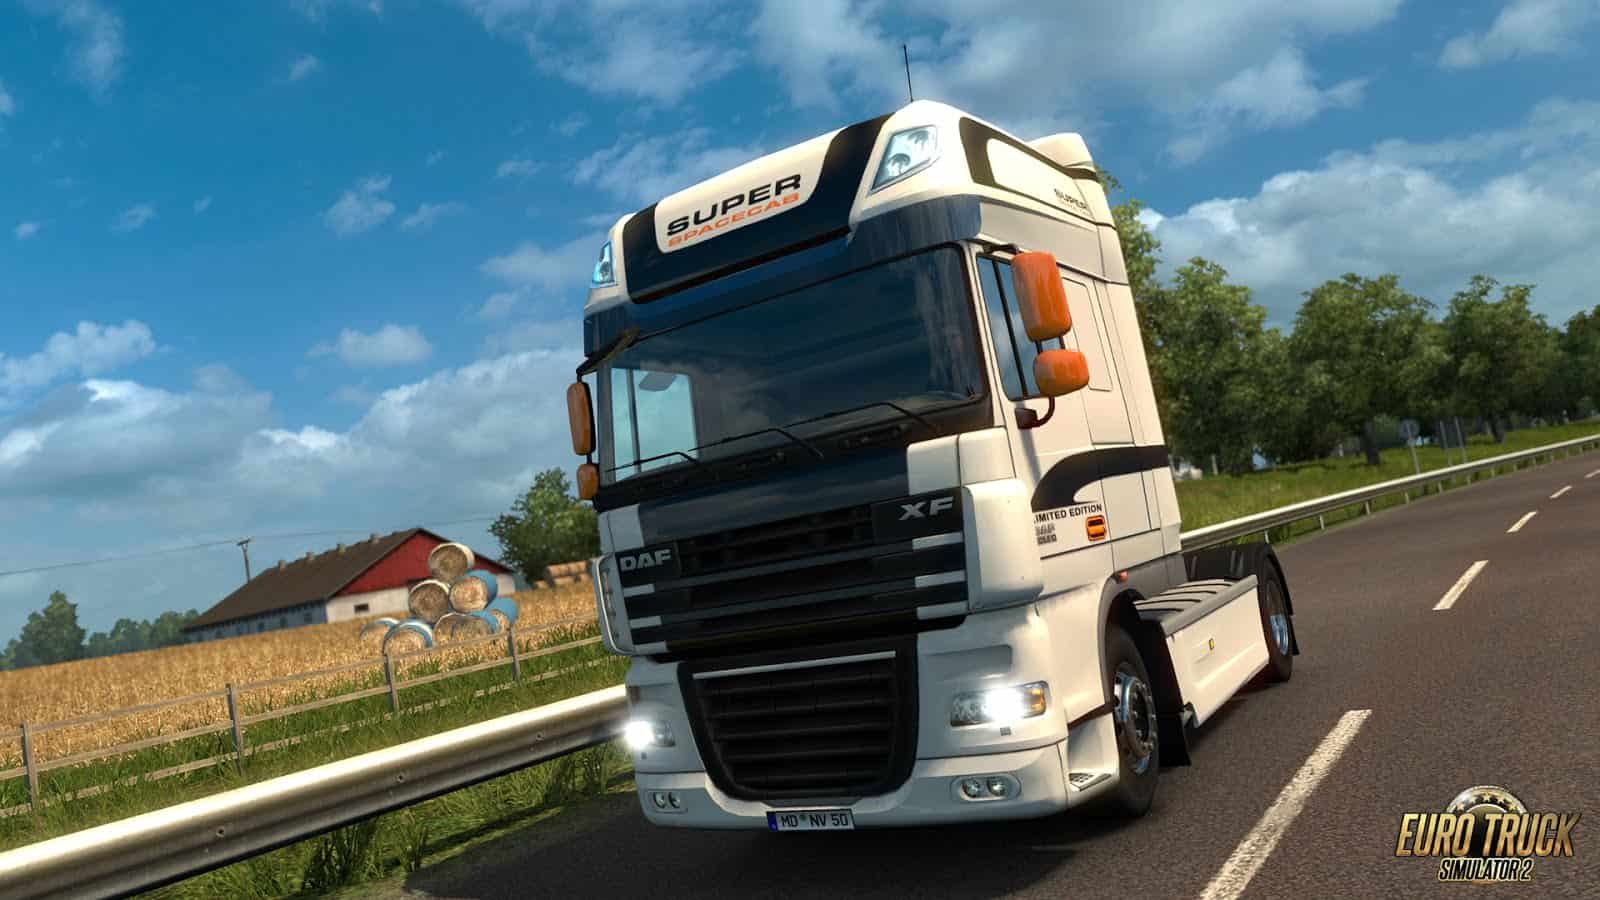 ETS 2, Tips, Cheat, Uang, Money